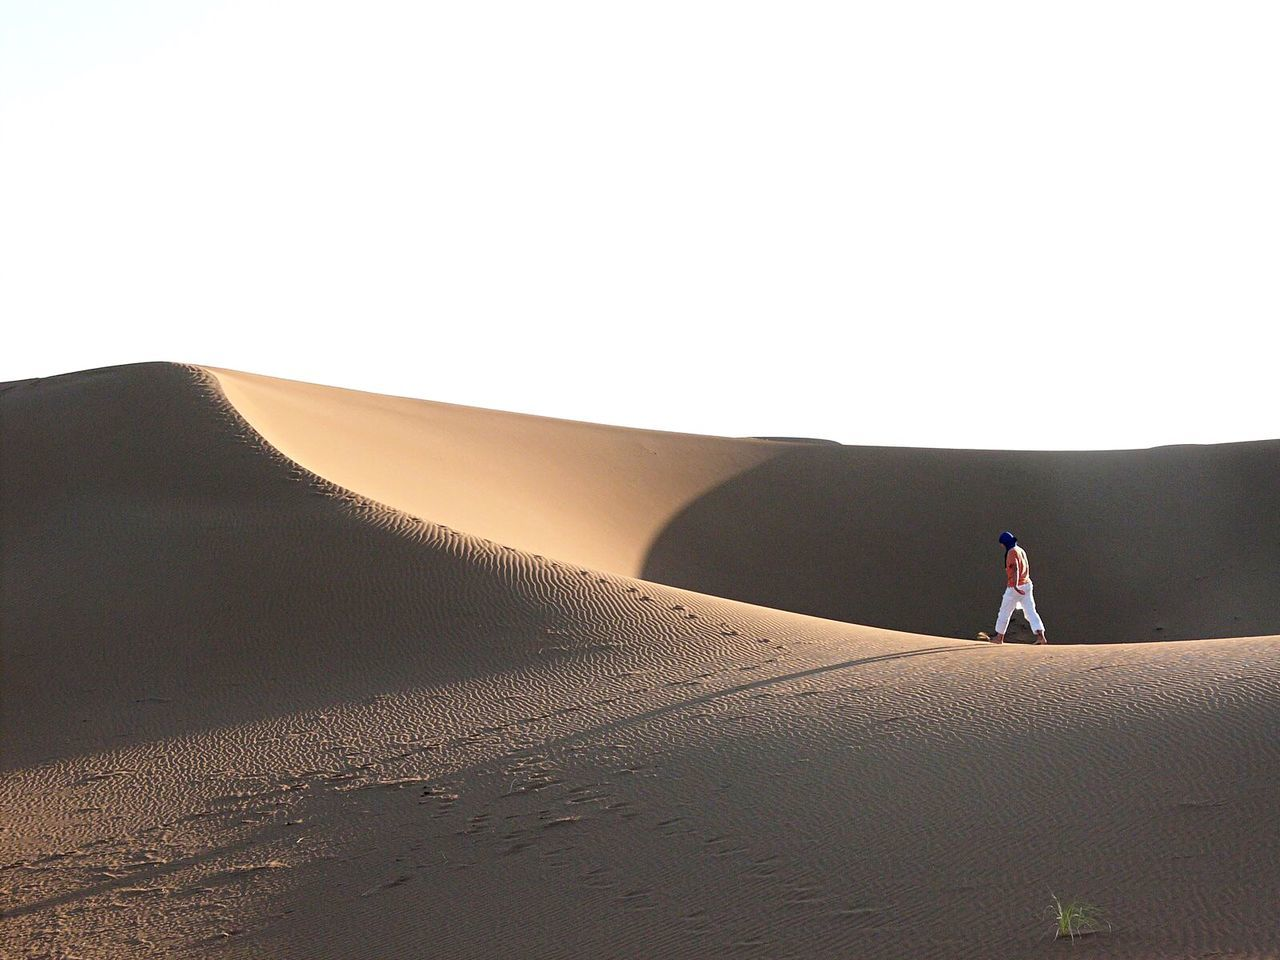 Walking in the desert at Erg Chegaga in Morocco Morocco Travel Photography Desert Edge Of The World Deserts Around The World Sand Empty Places Loneliness Desert Beauty People And Places